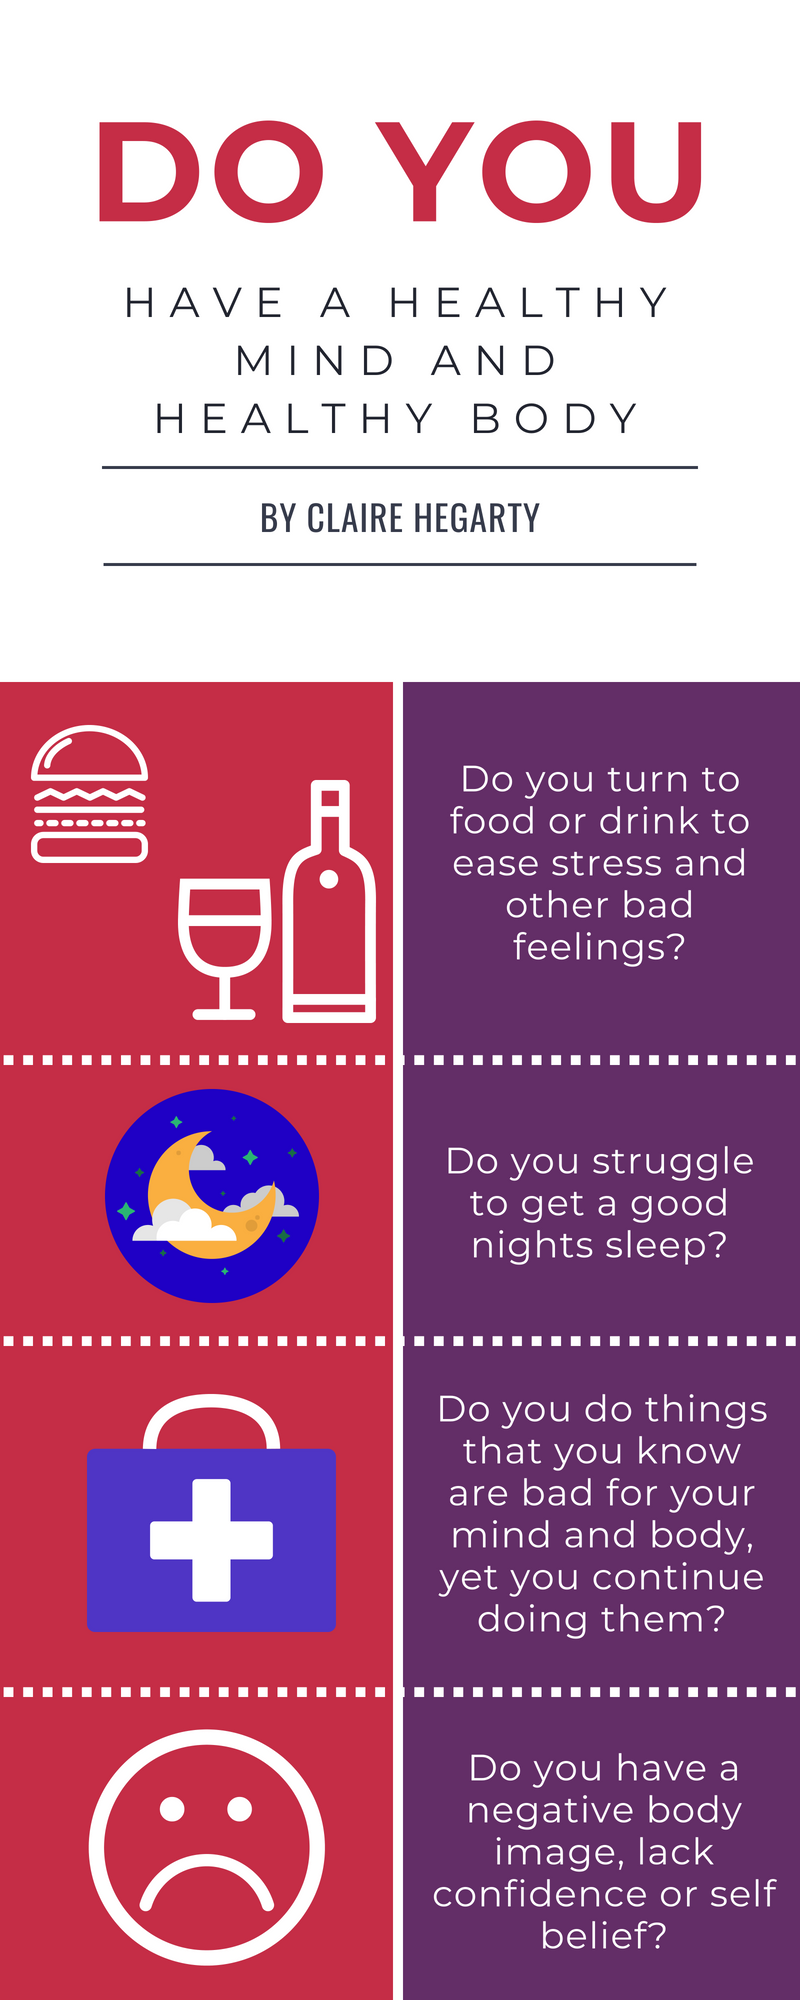 Beehive Healthcare | Pilates, Tai Chi and Hypnotherapy | Infographic